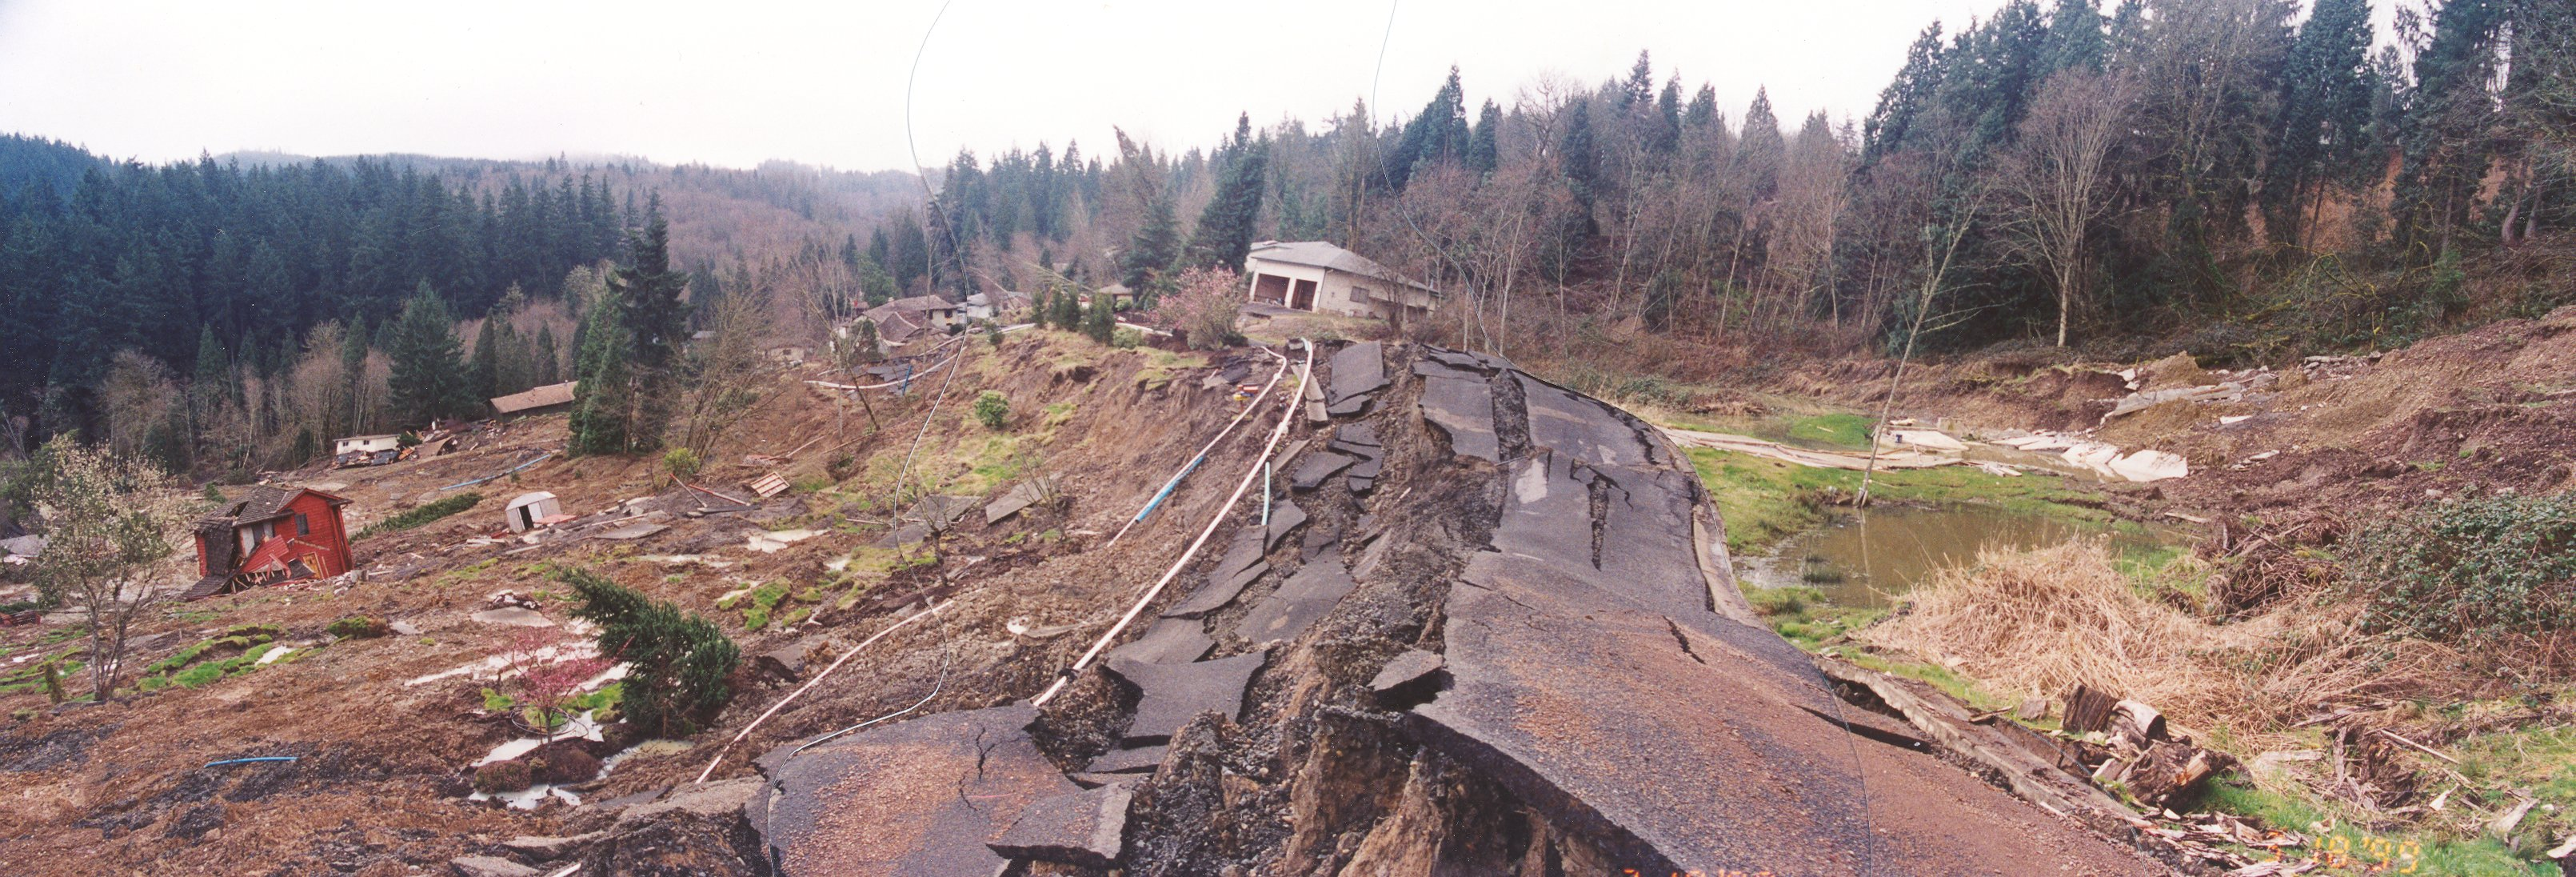 Photo of landslide damage